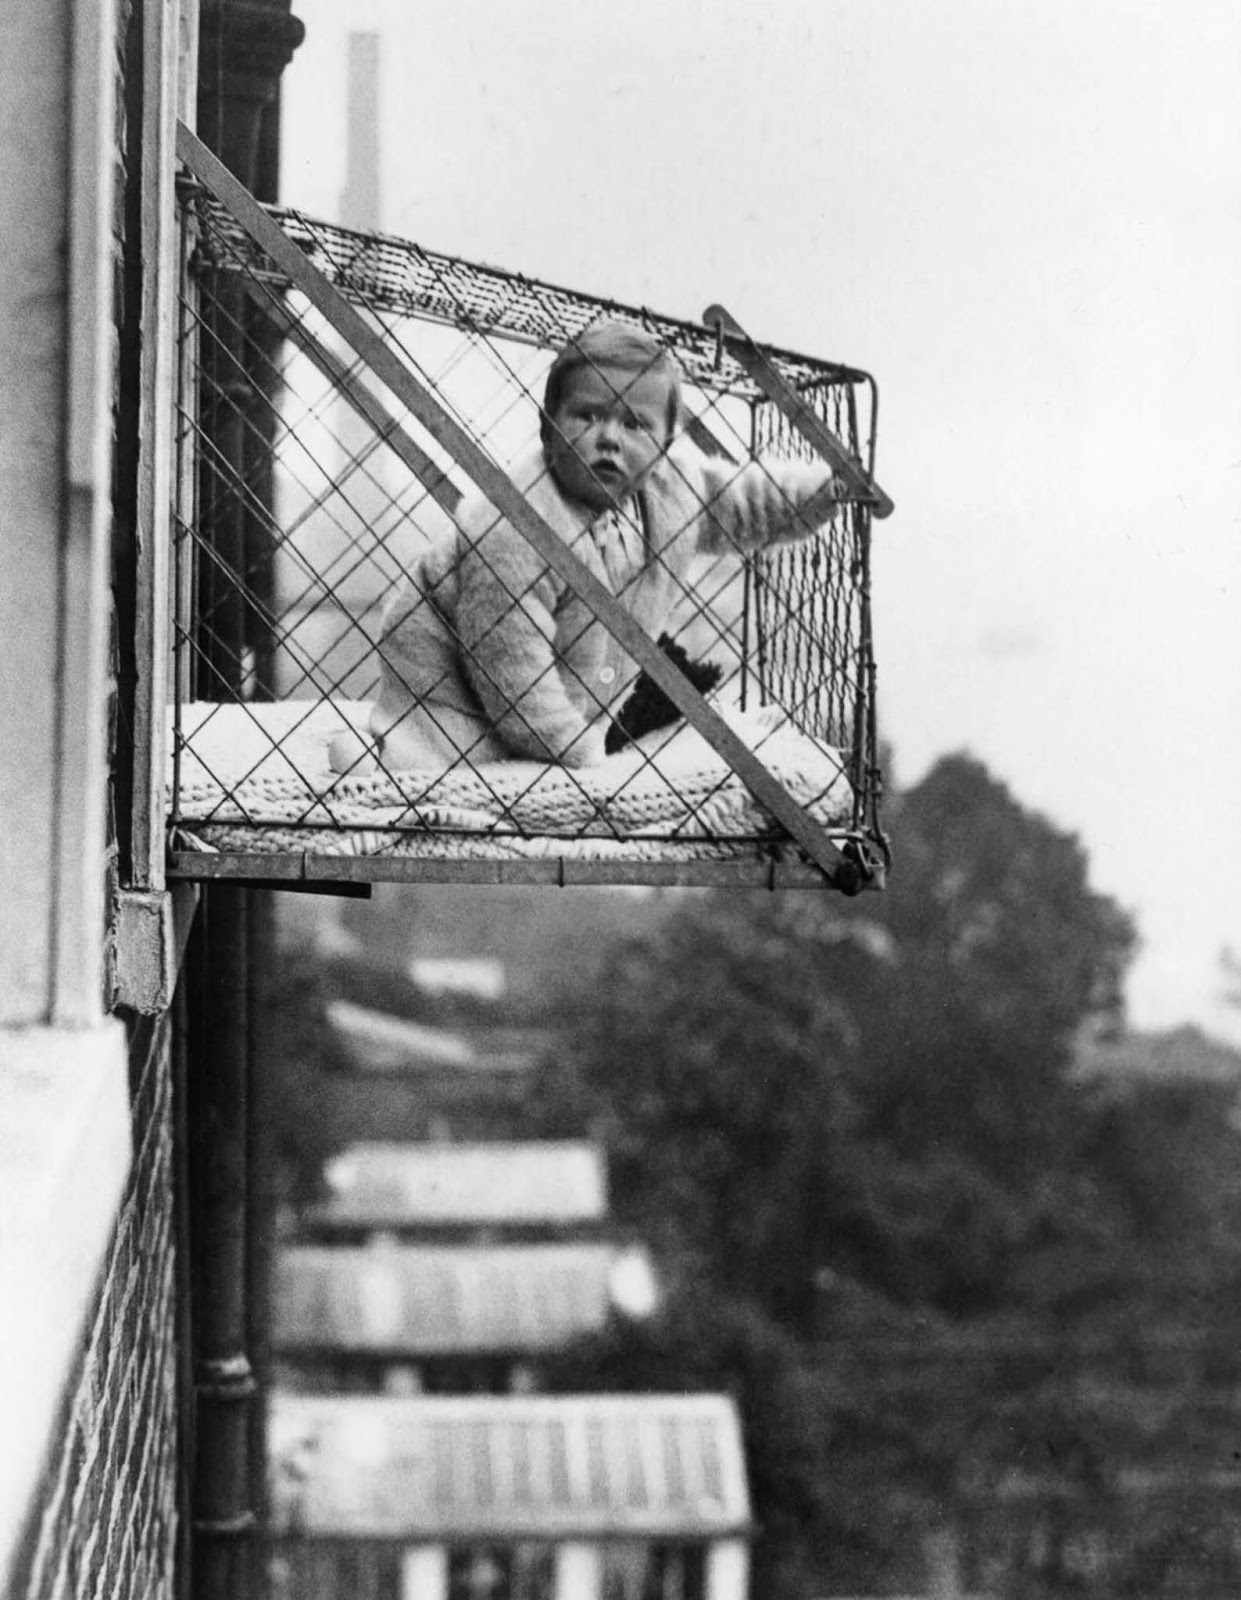 Responding to a lack of homes with outdoor space, people began outfitting windows with infant-sized cages for babies to hang out in. 1934.